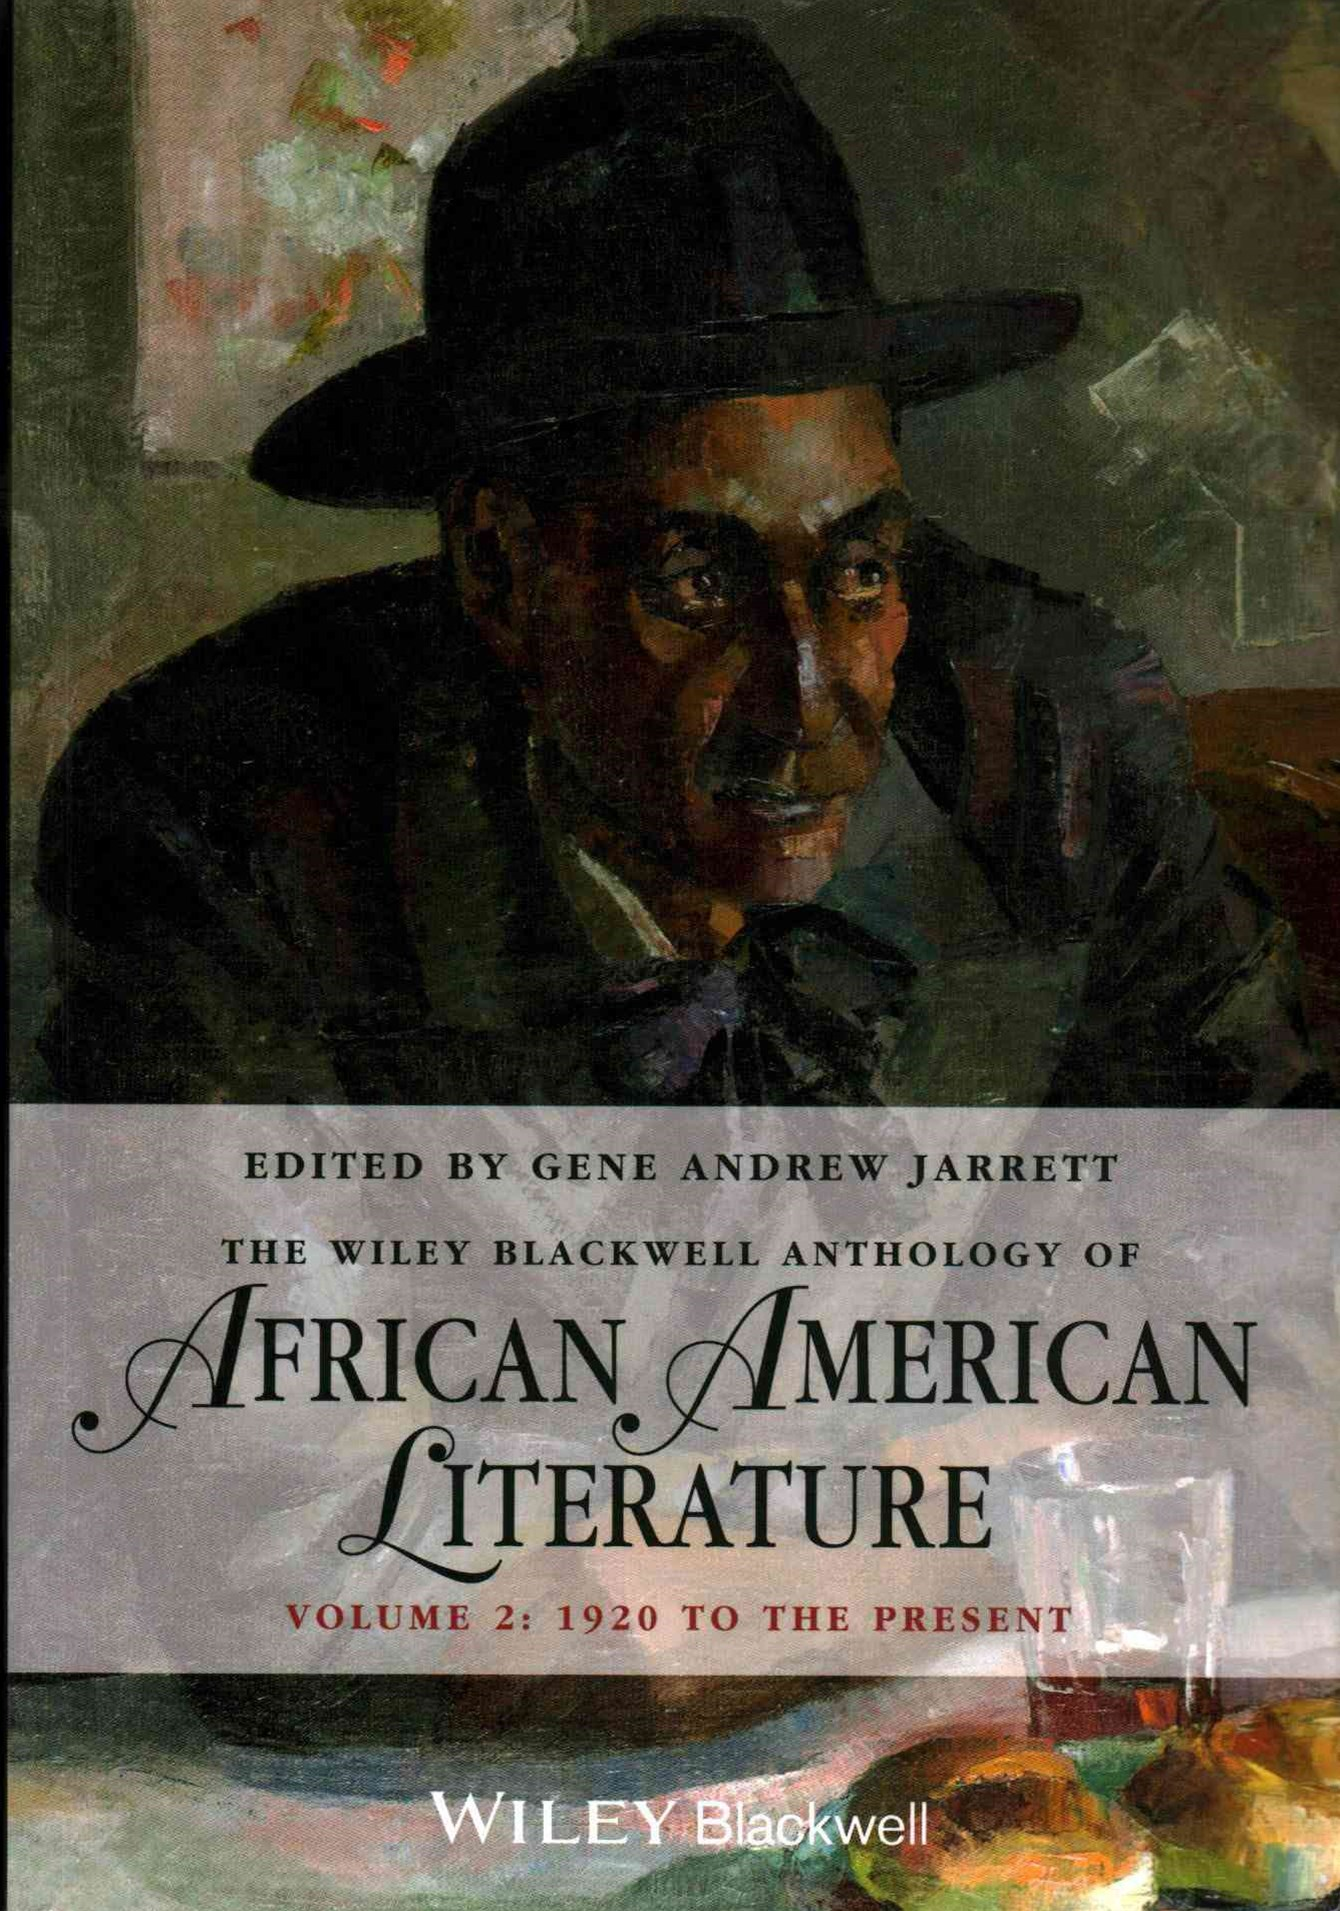 The Wiley Blackwell Anthology of African American Literature Volume 2 - 1920 to the Present